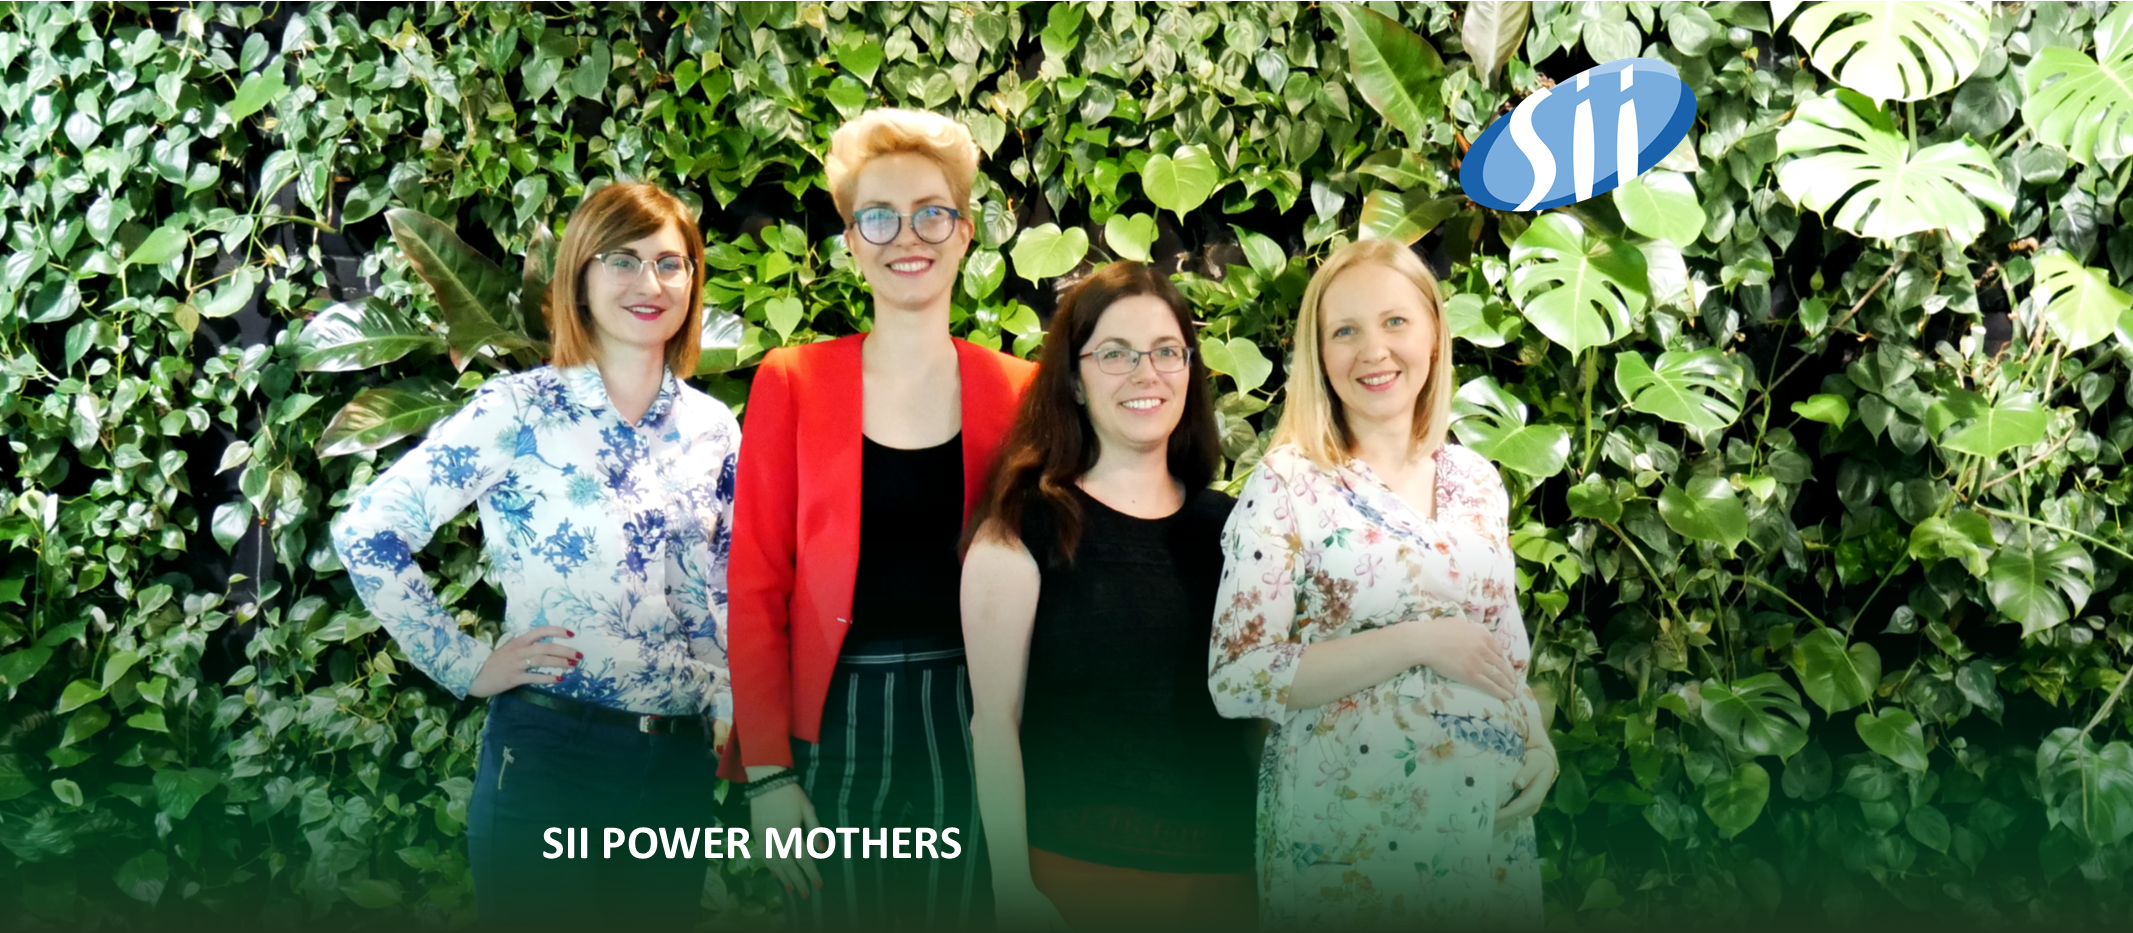 Why mothers are important and what is important for them – Sii through the eyes of women who combine motherhood with a career